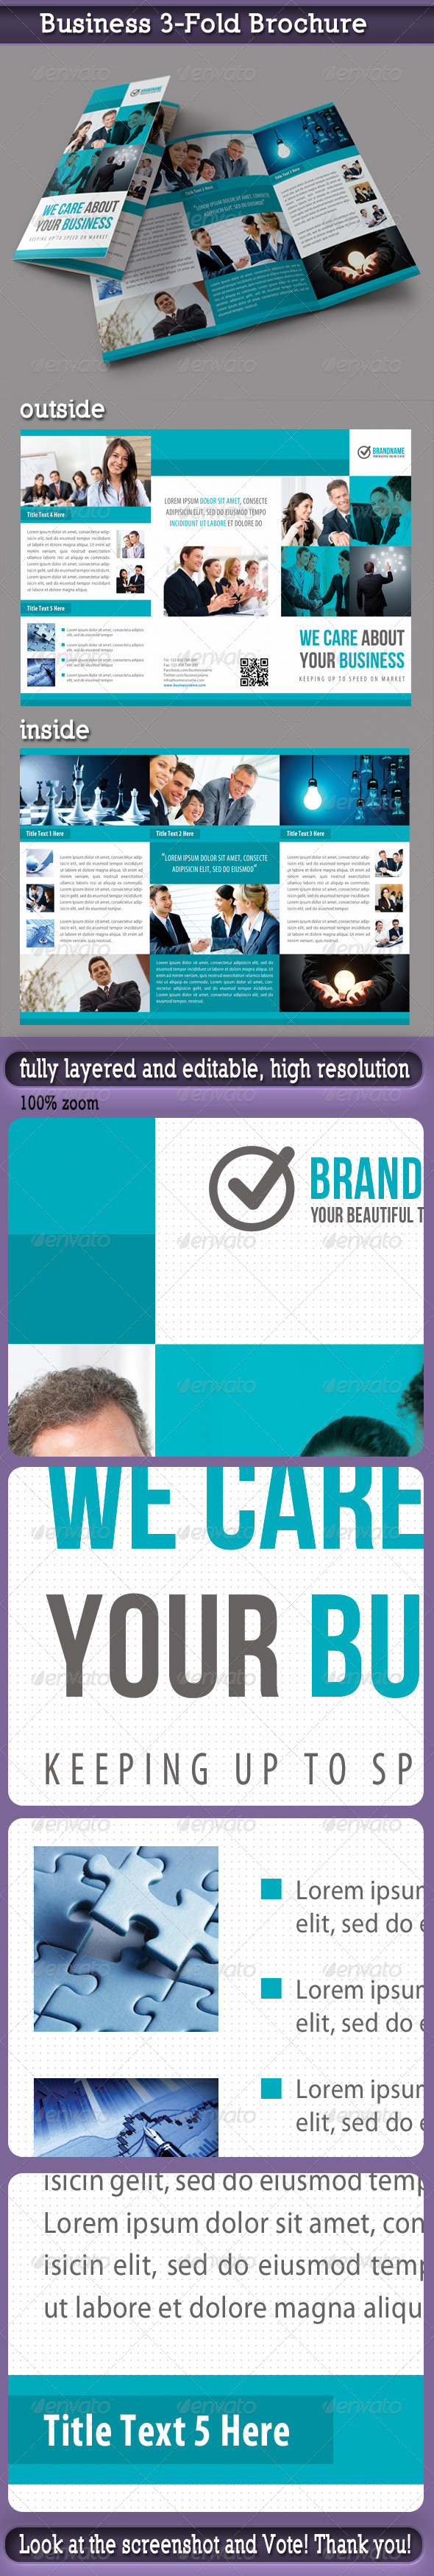 GraphicRiver Business 3-Fold Brochure 5481115